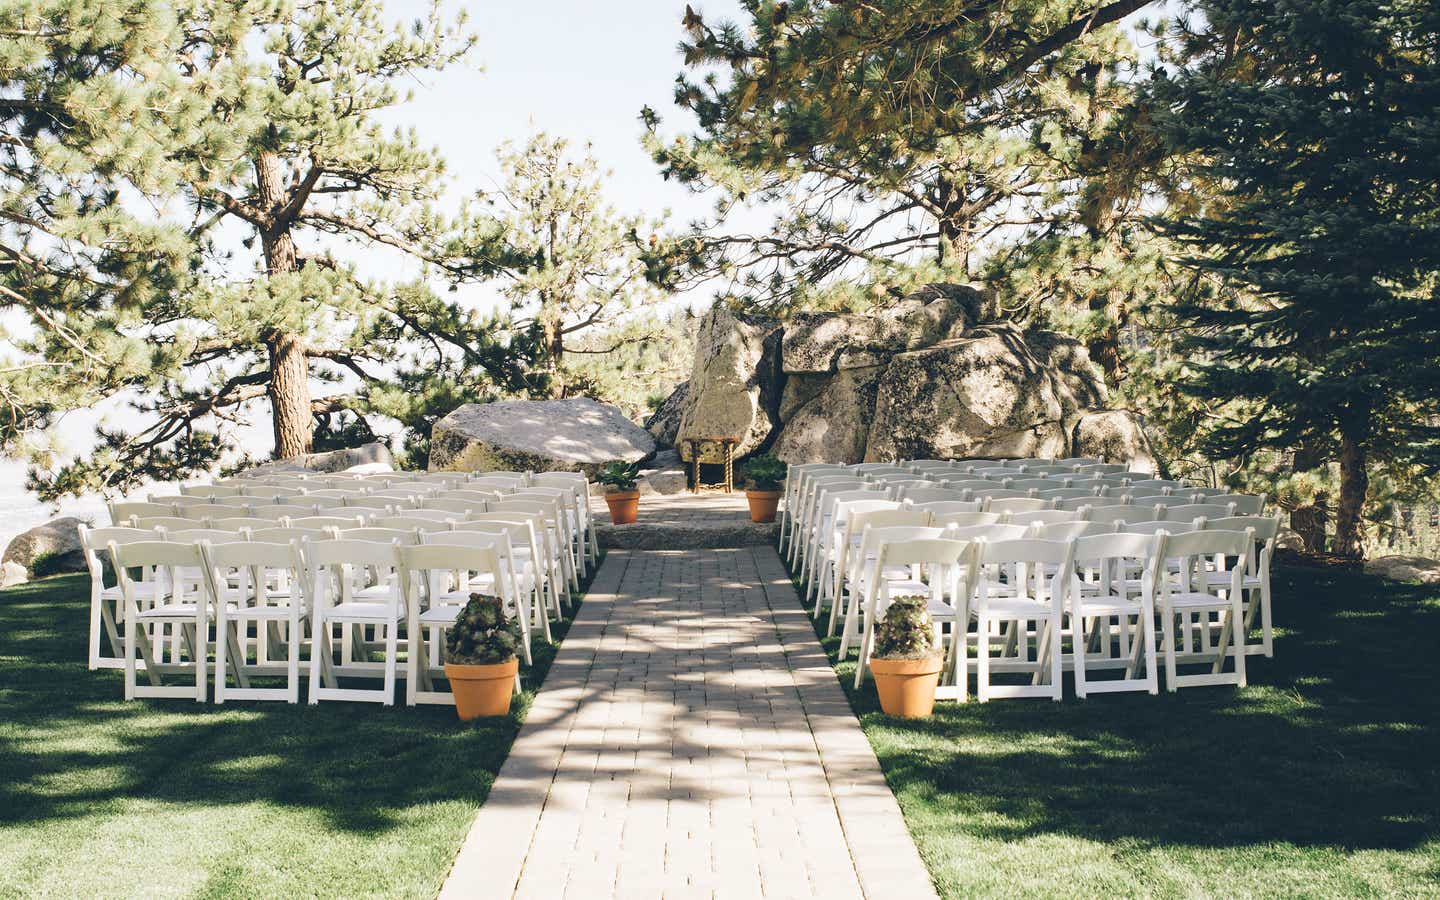 White chairs set up for a wedding ceremony